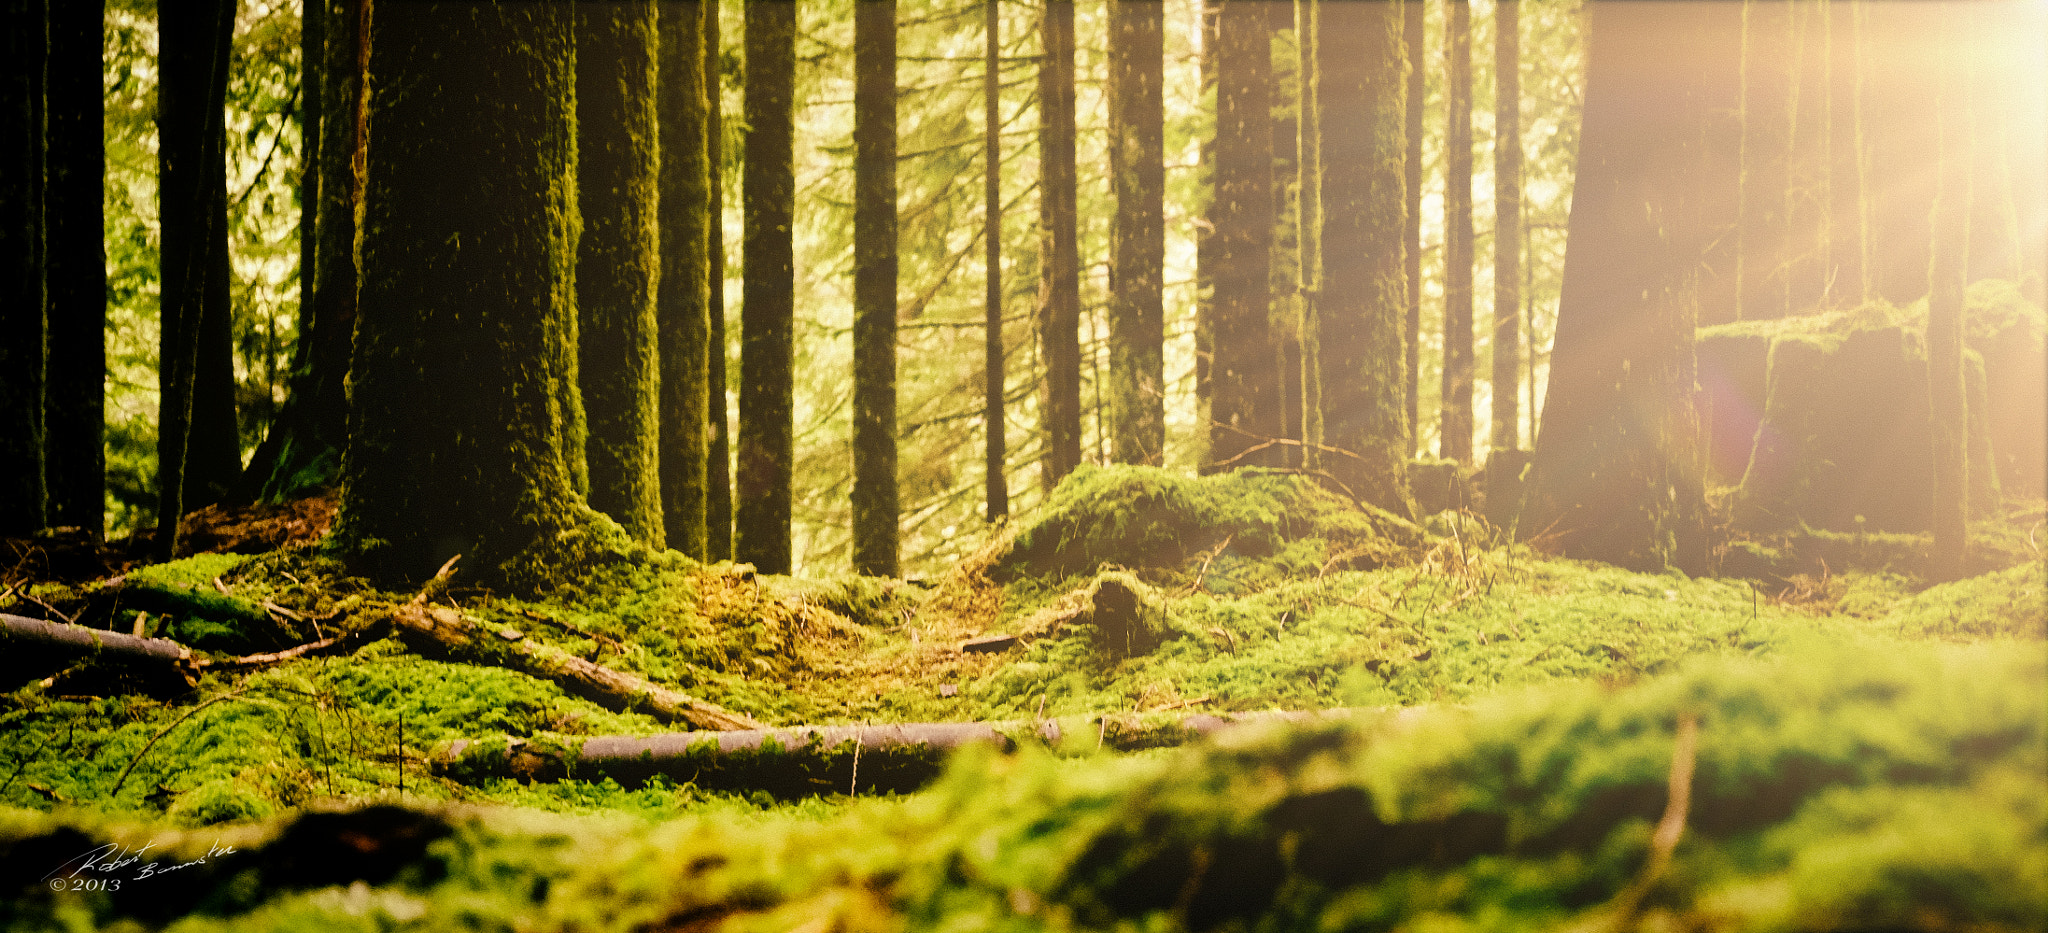 Photograph Mossy by Rob Bannister on 500px